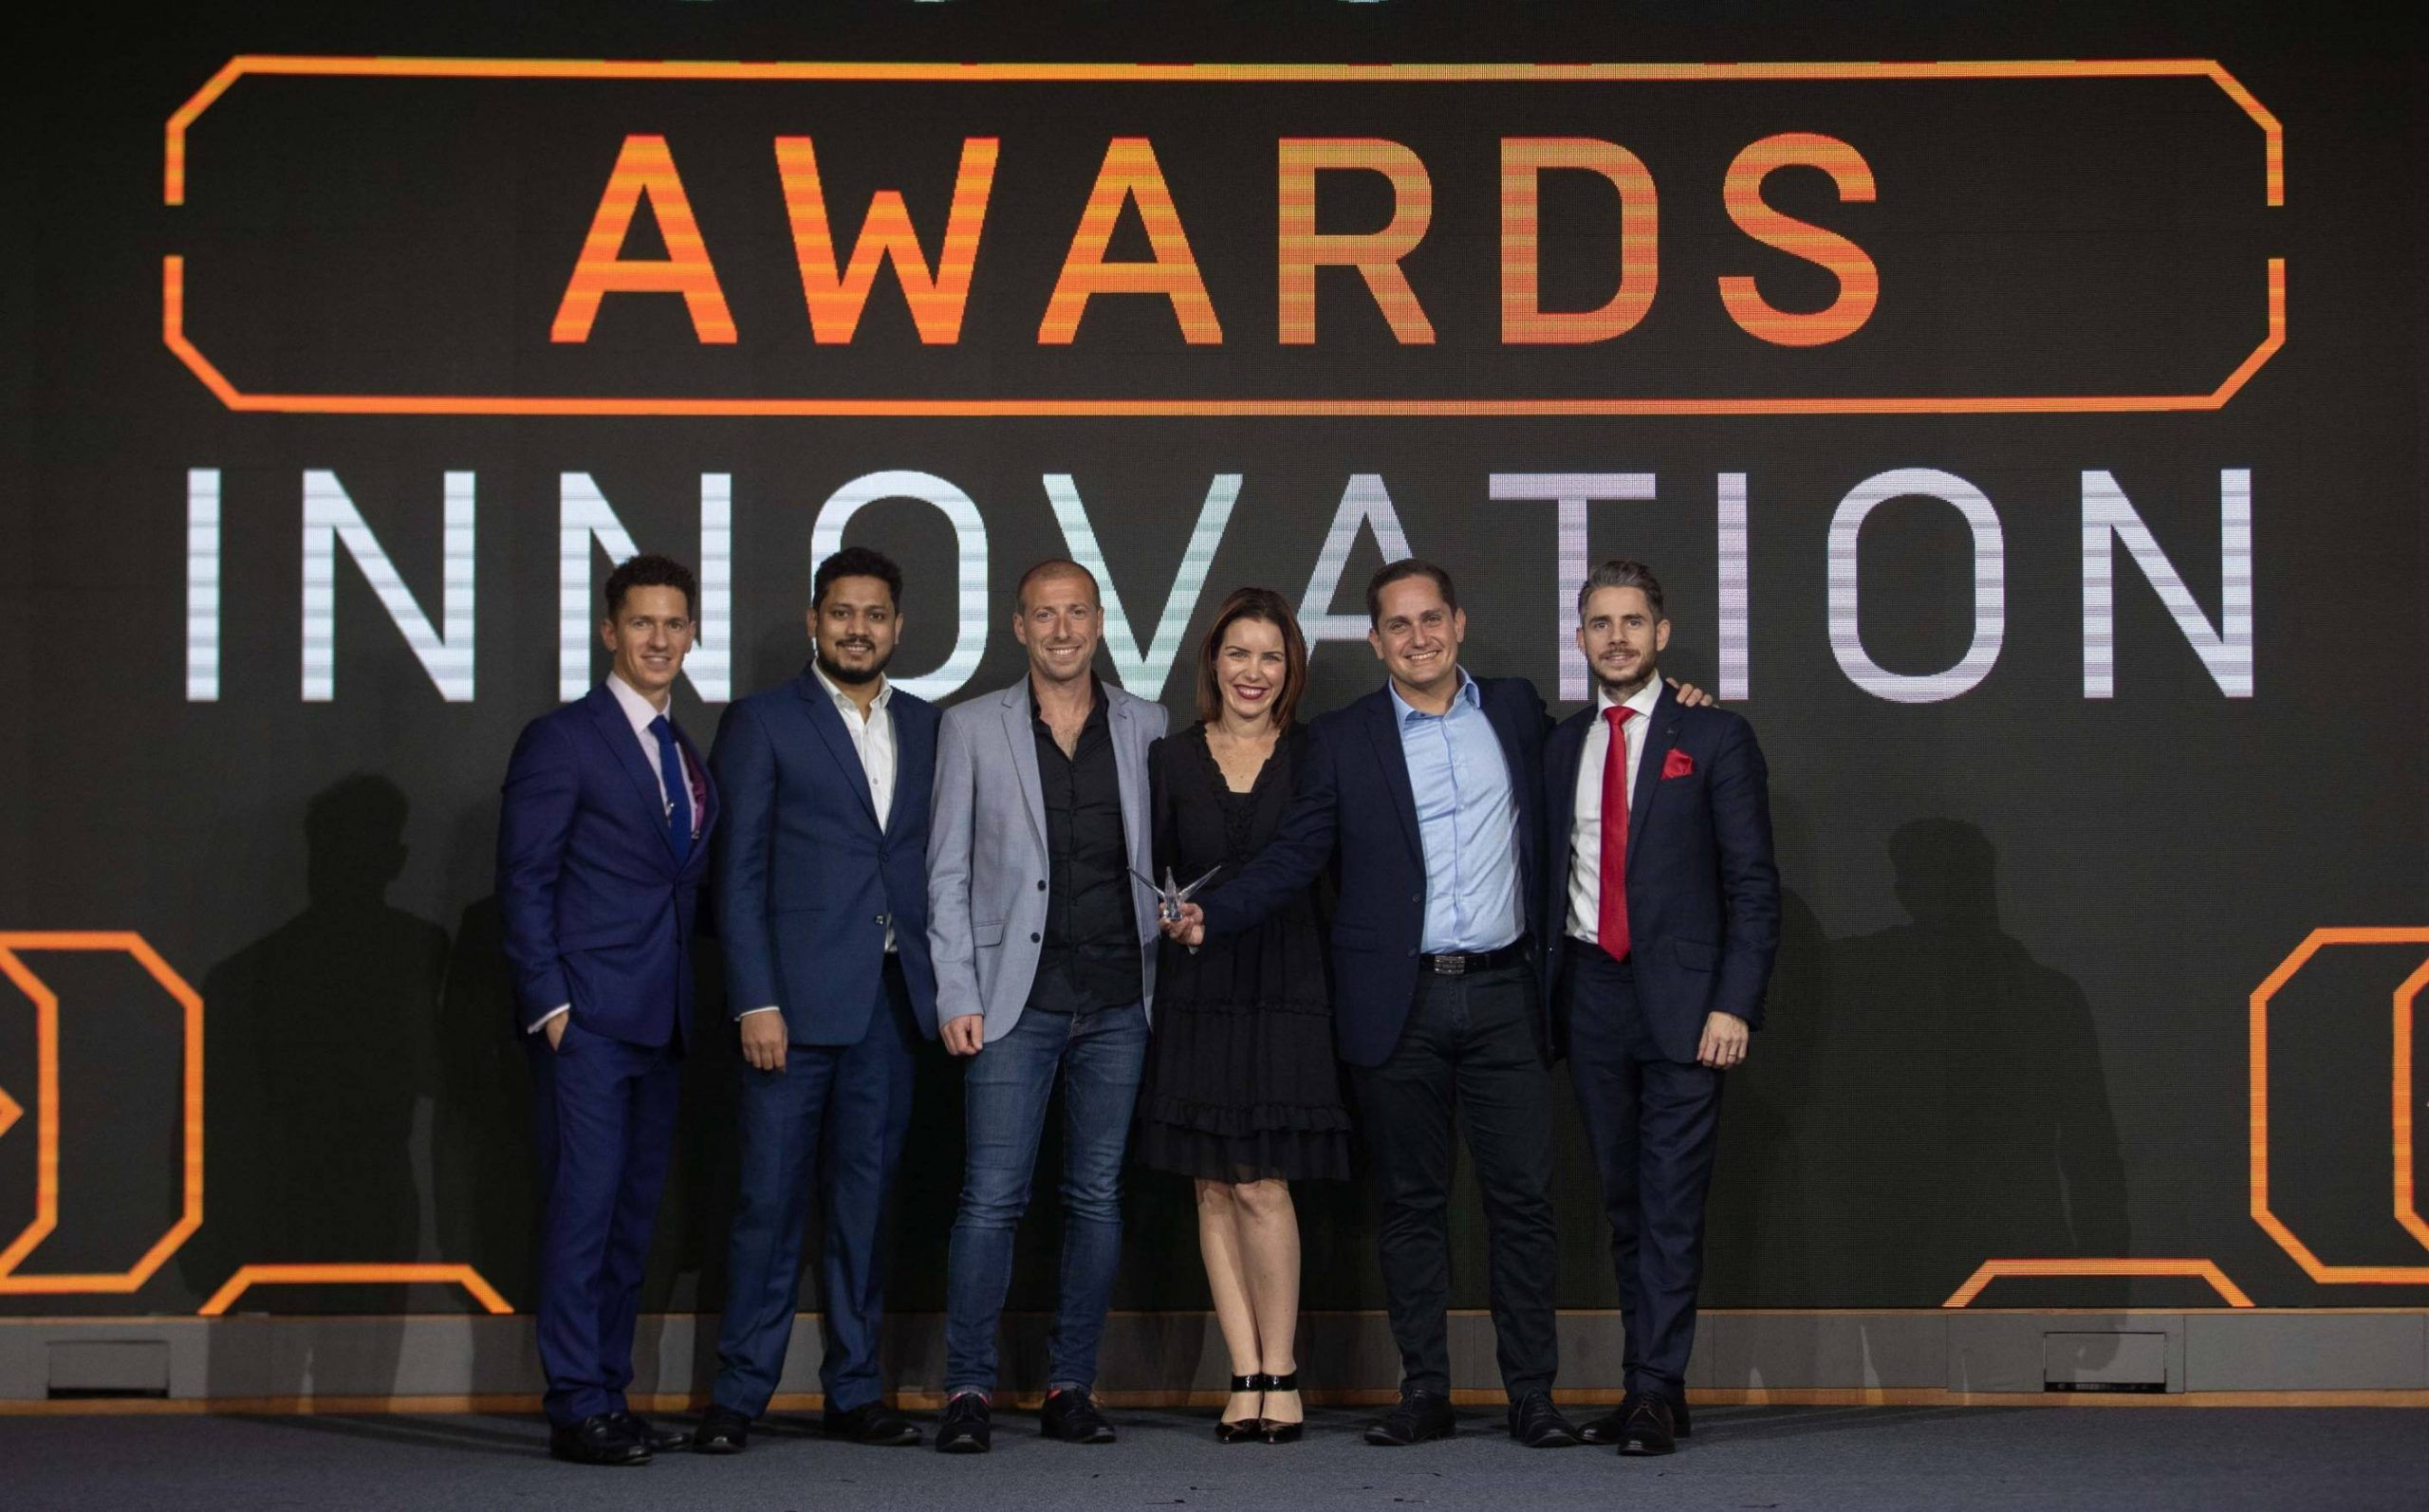 MoneyNetint Wins Ripple's Best Connector Award For Making The Most  Connections On The Ripple Network #awards #c… | Ripple, Financial  institutions, Network marketing